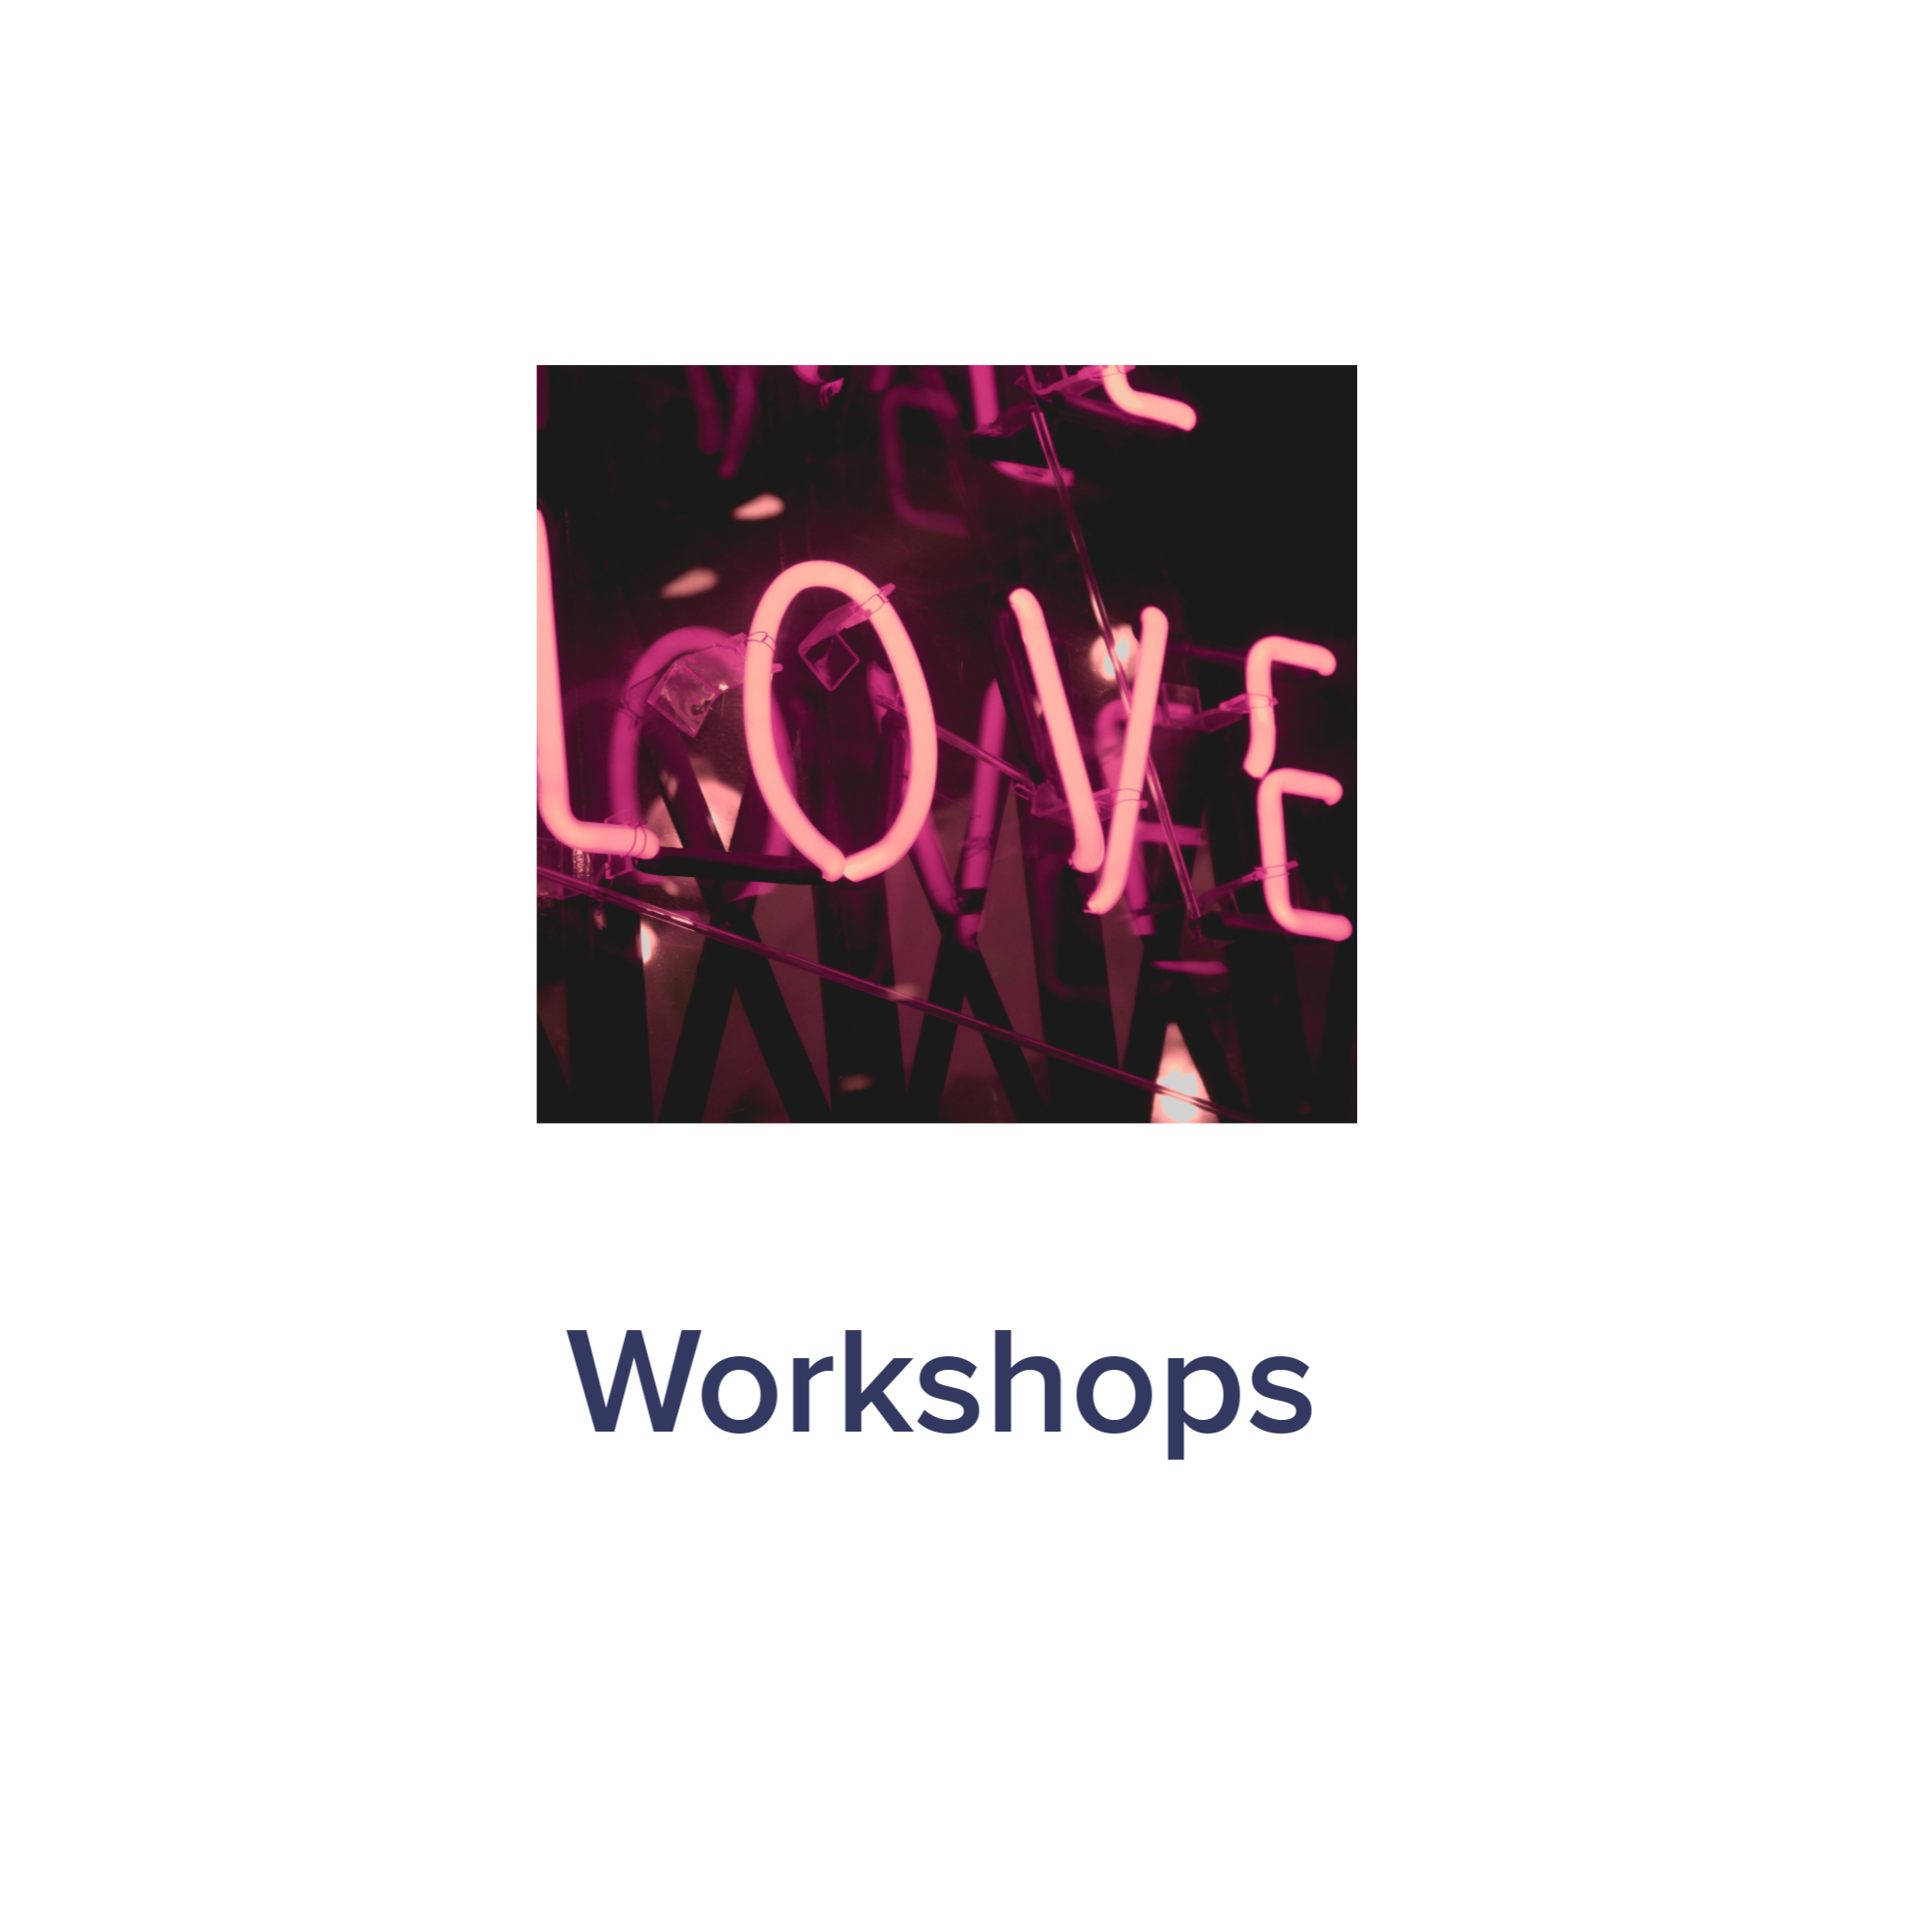 FH social page workshops image.png